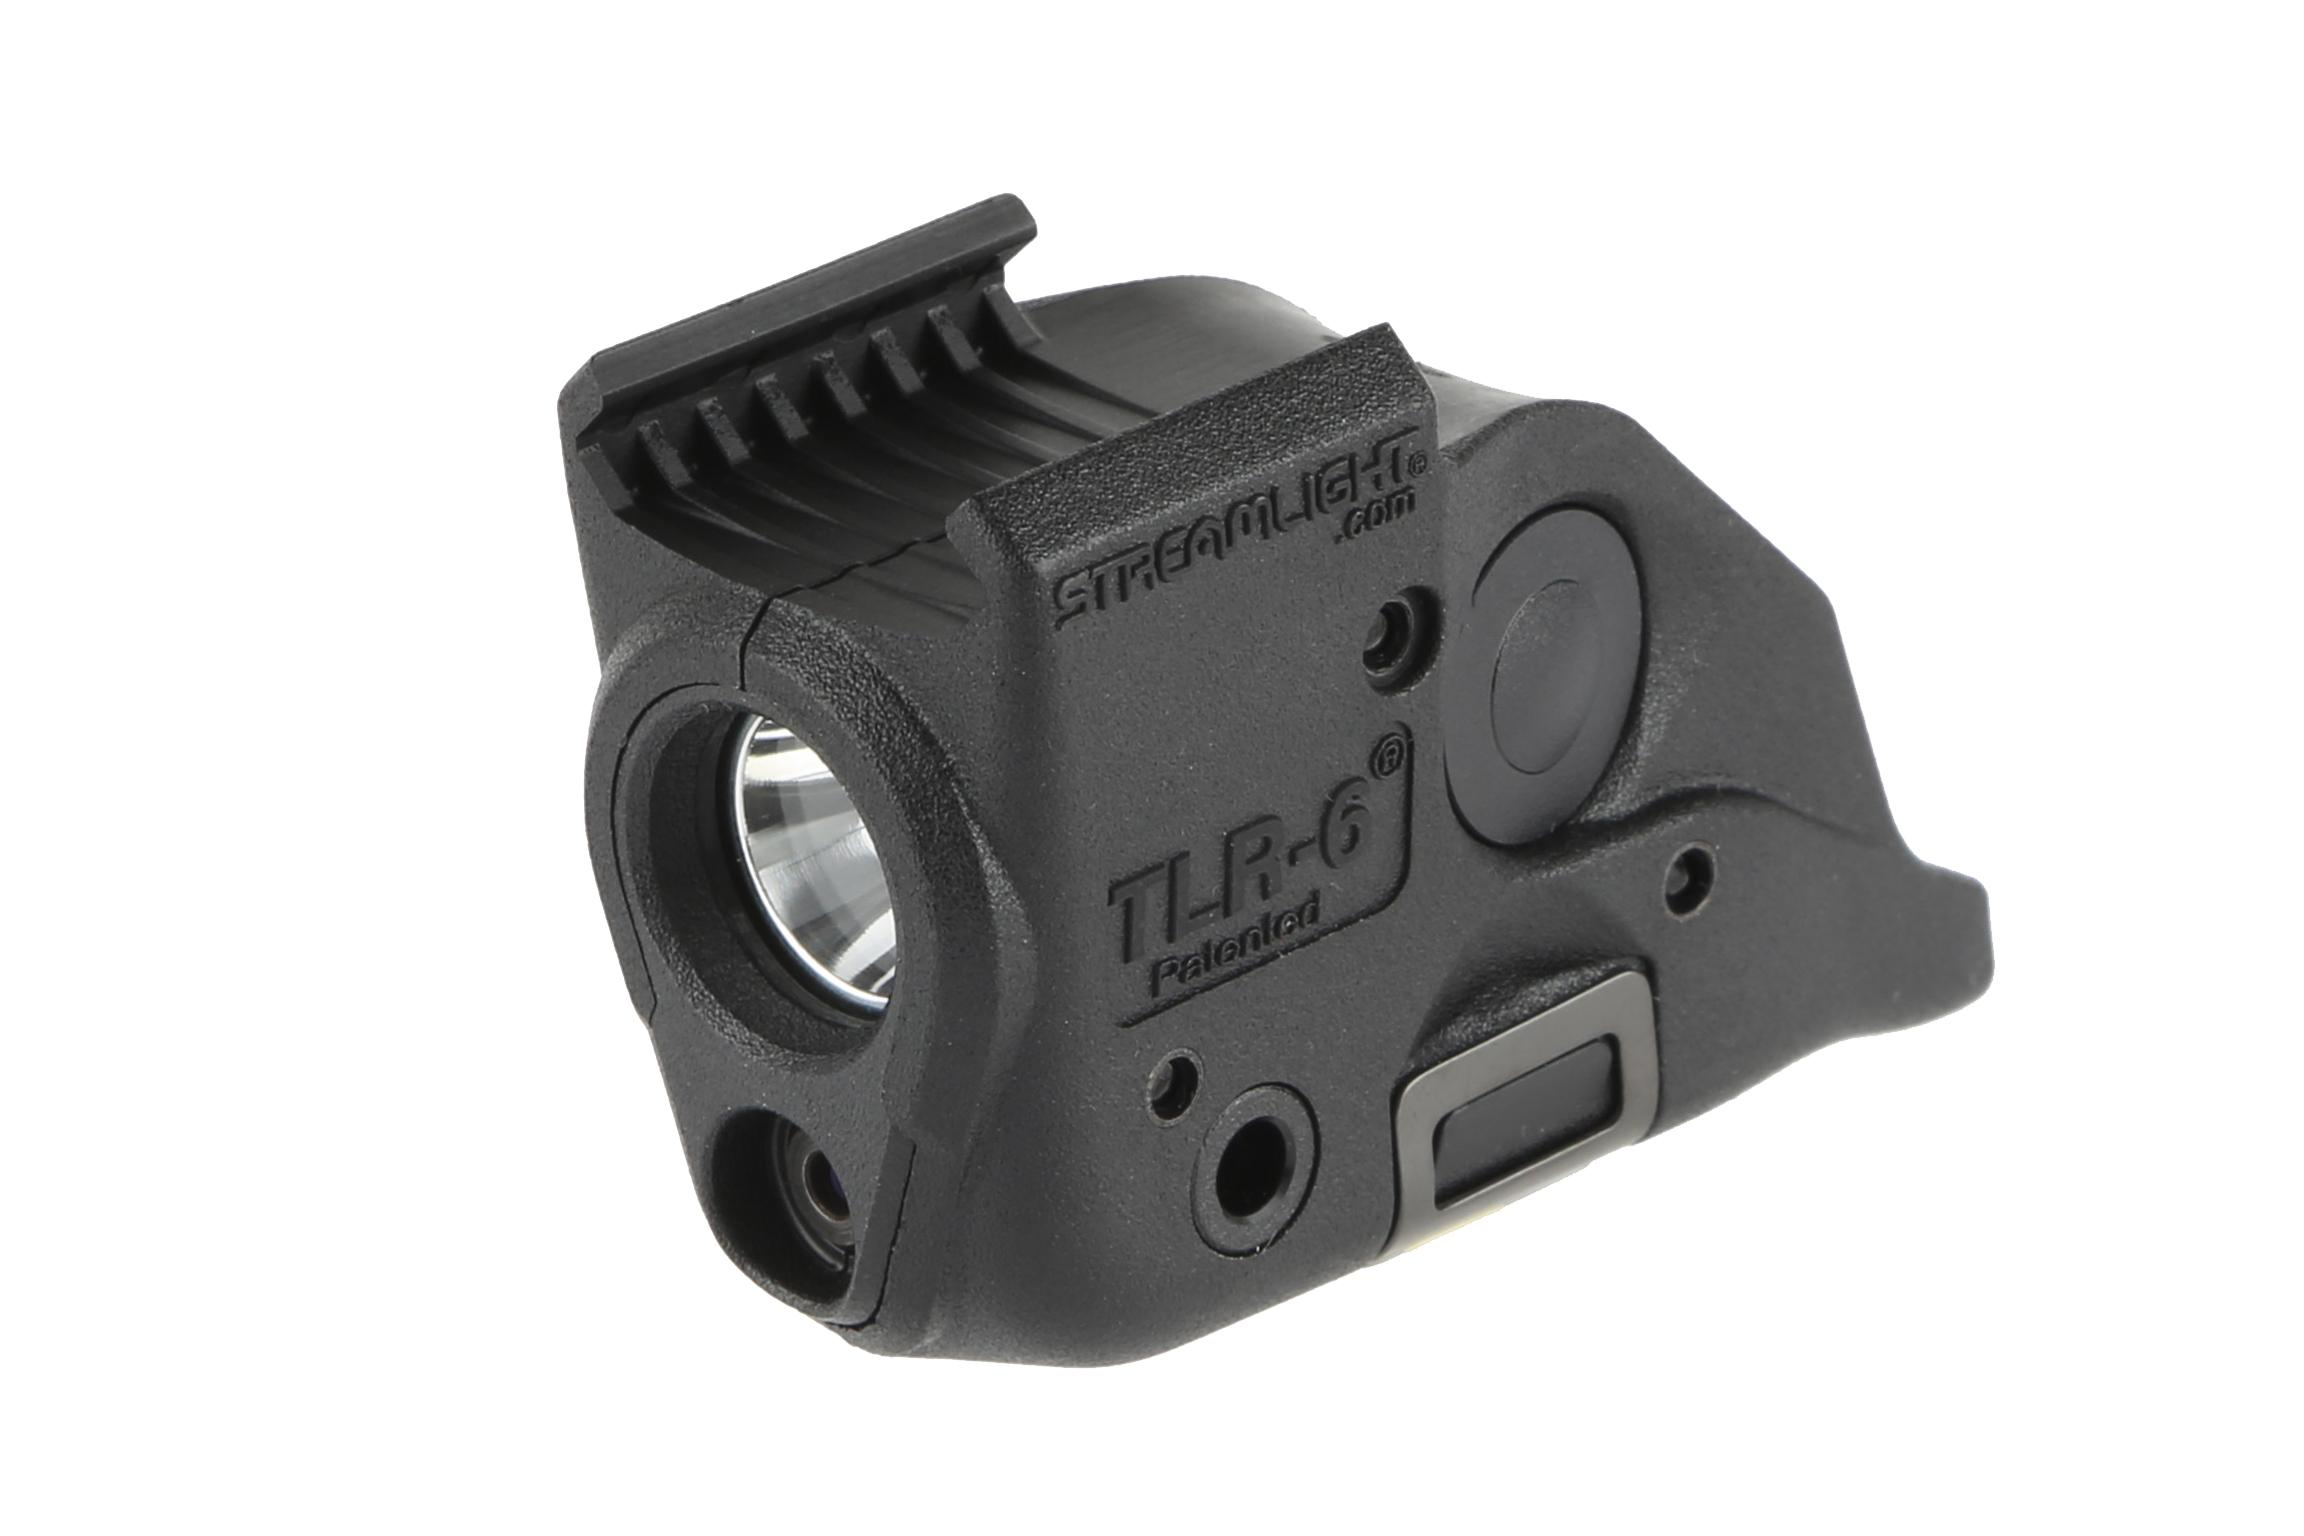 Streamlight TLR-6 SubCompact 100 Lumen Weapon Light with Red Laser - Rail Mount Smith & Wesson M&P